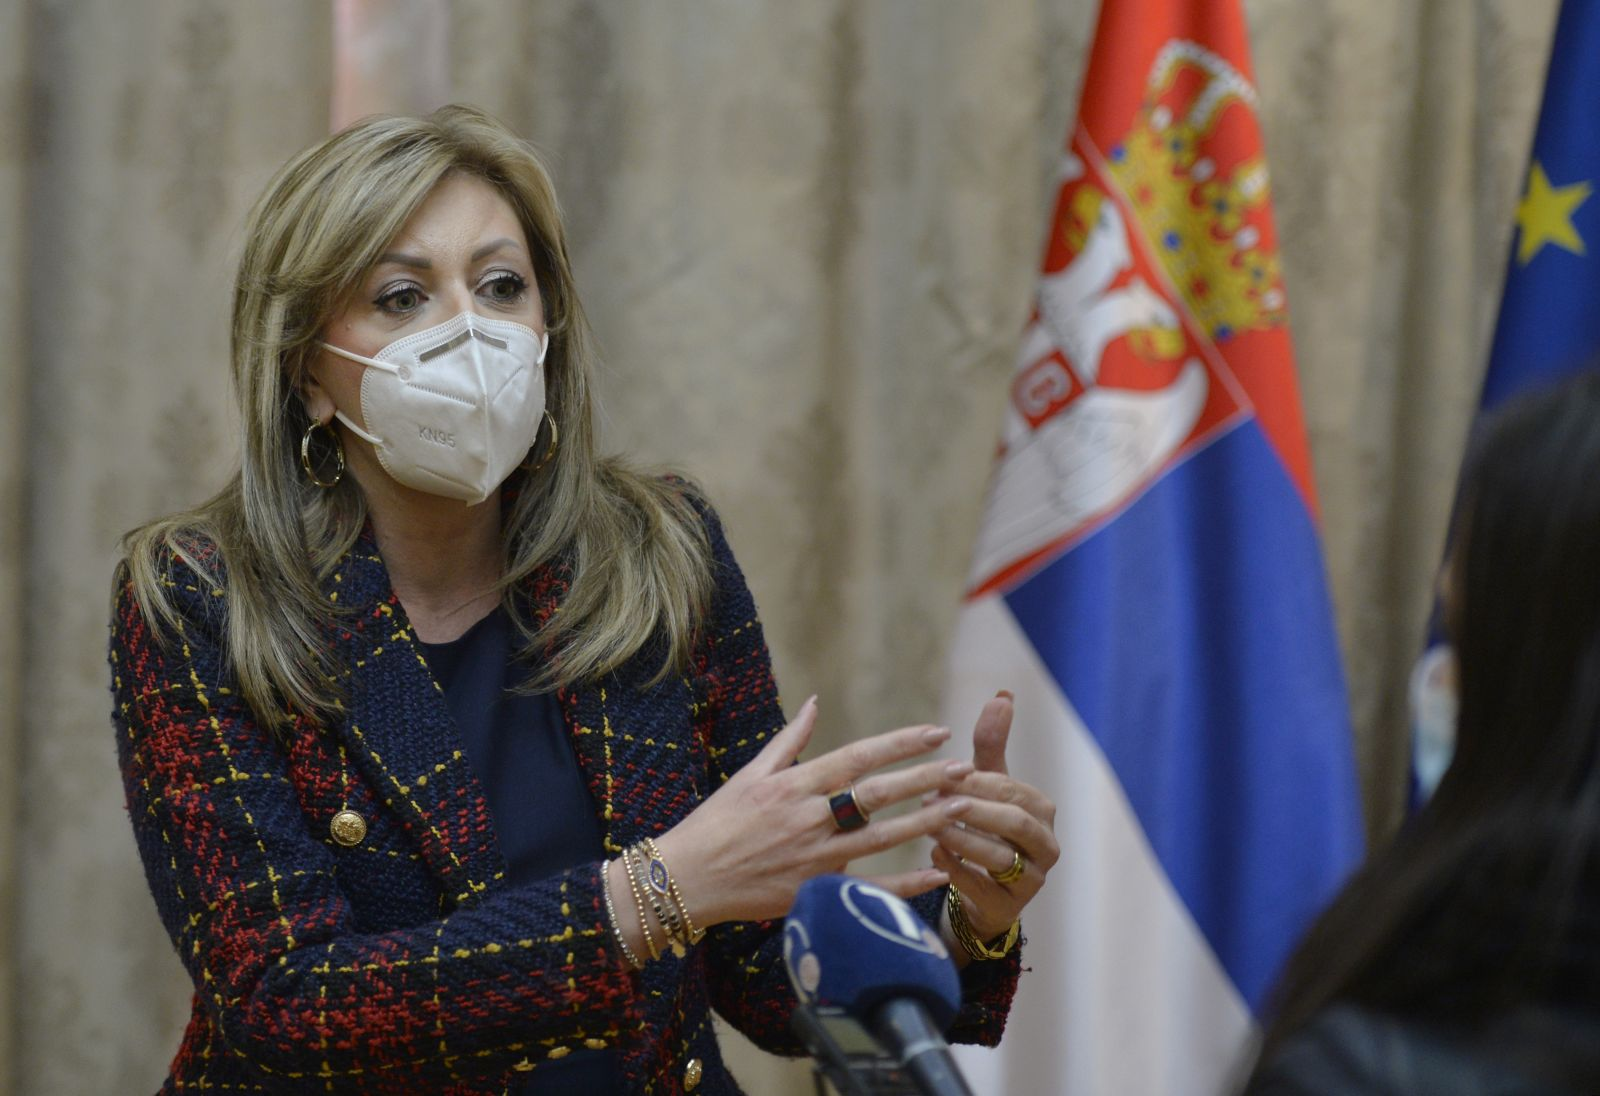 J. Joksimović: I expect political IGC by the end of the year, in line with the new methodology